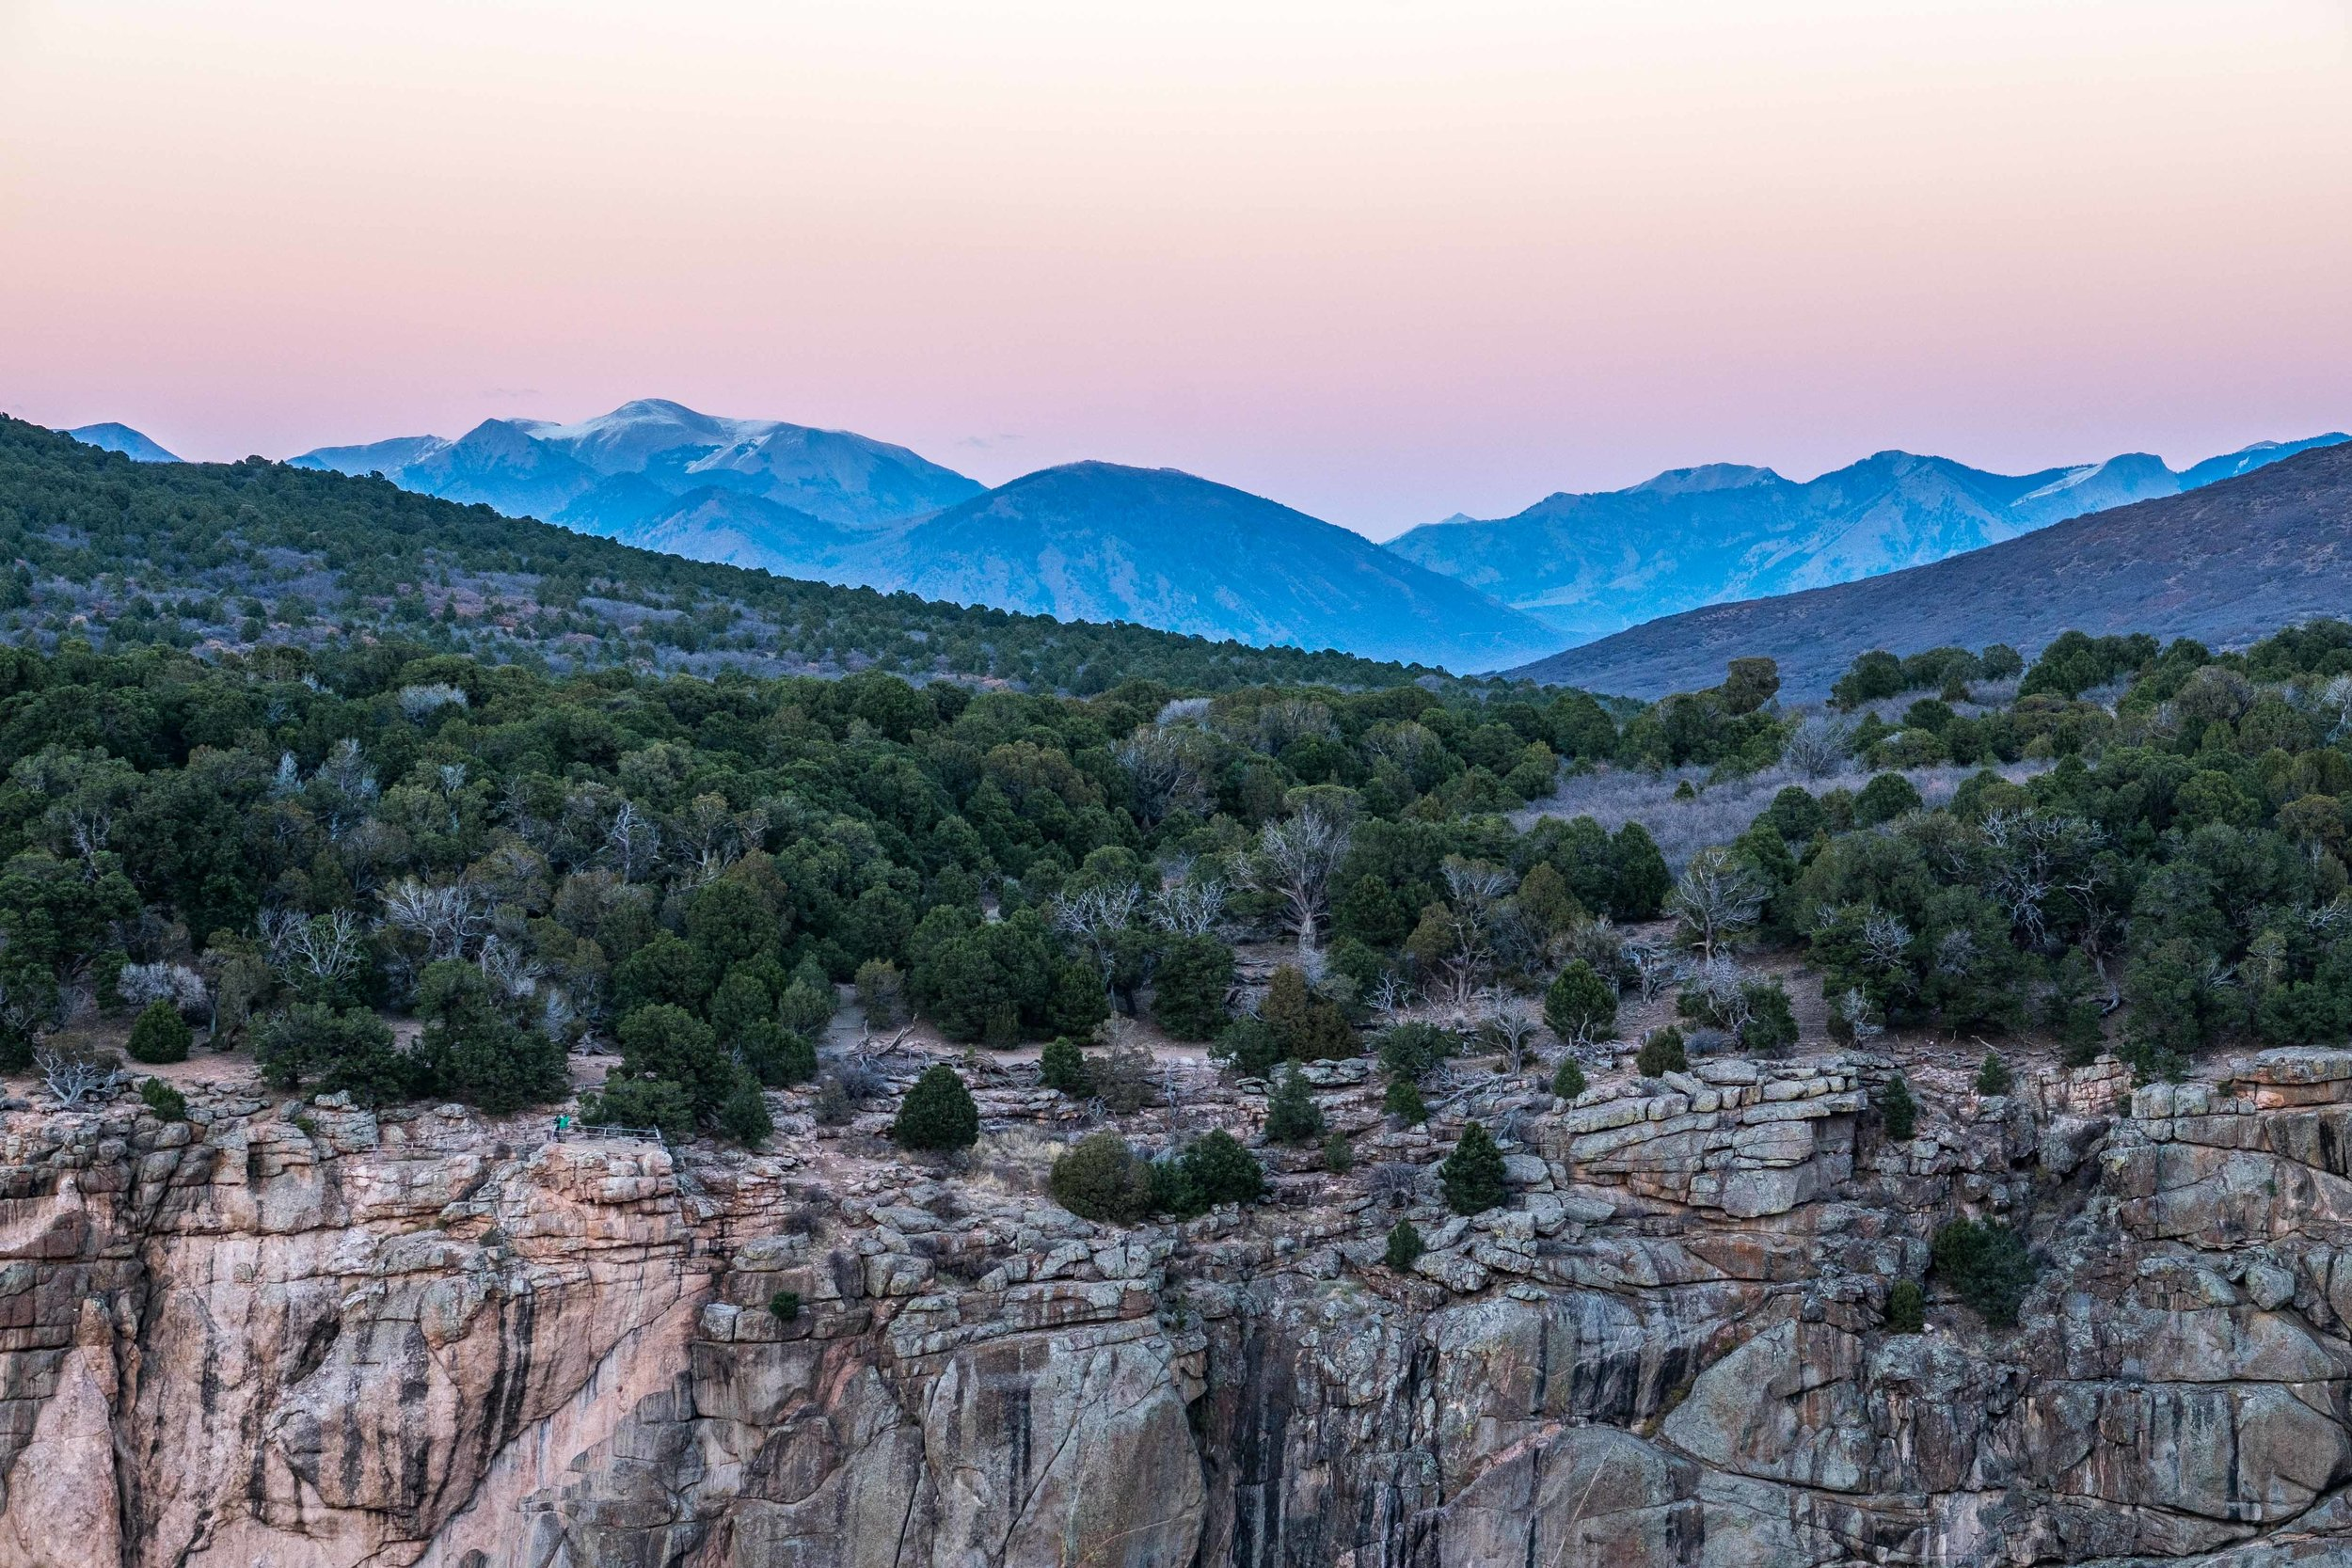 The sun was setting and we got great views to the North Rim. If you look closely, you can see some people on the bottom left edge of the canyon rim.